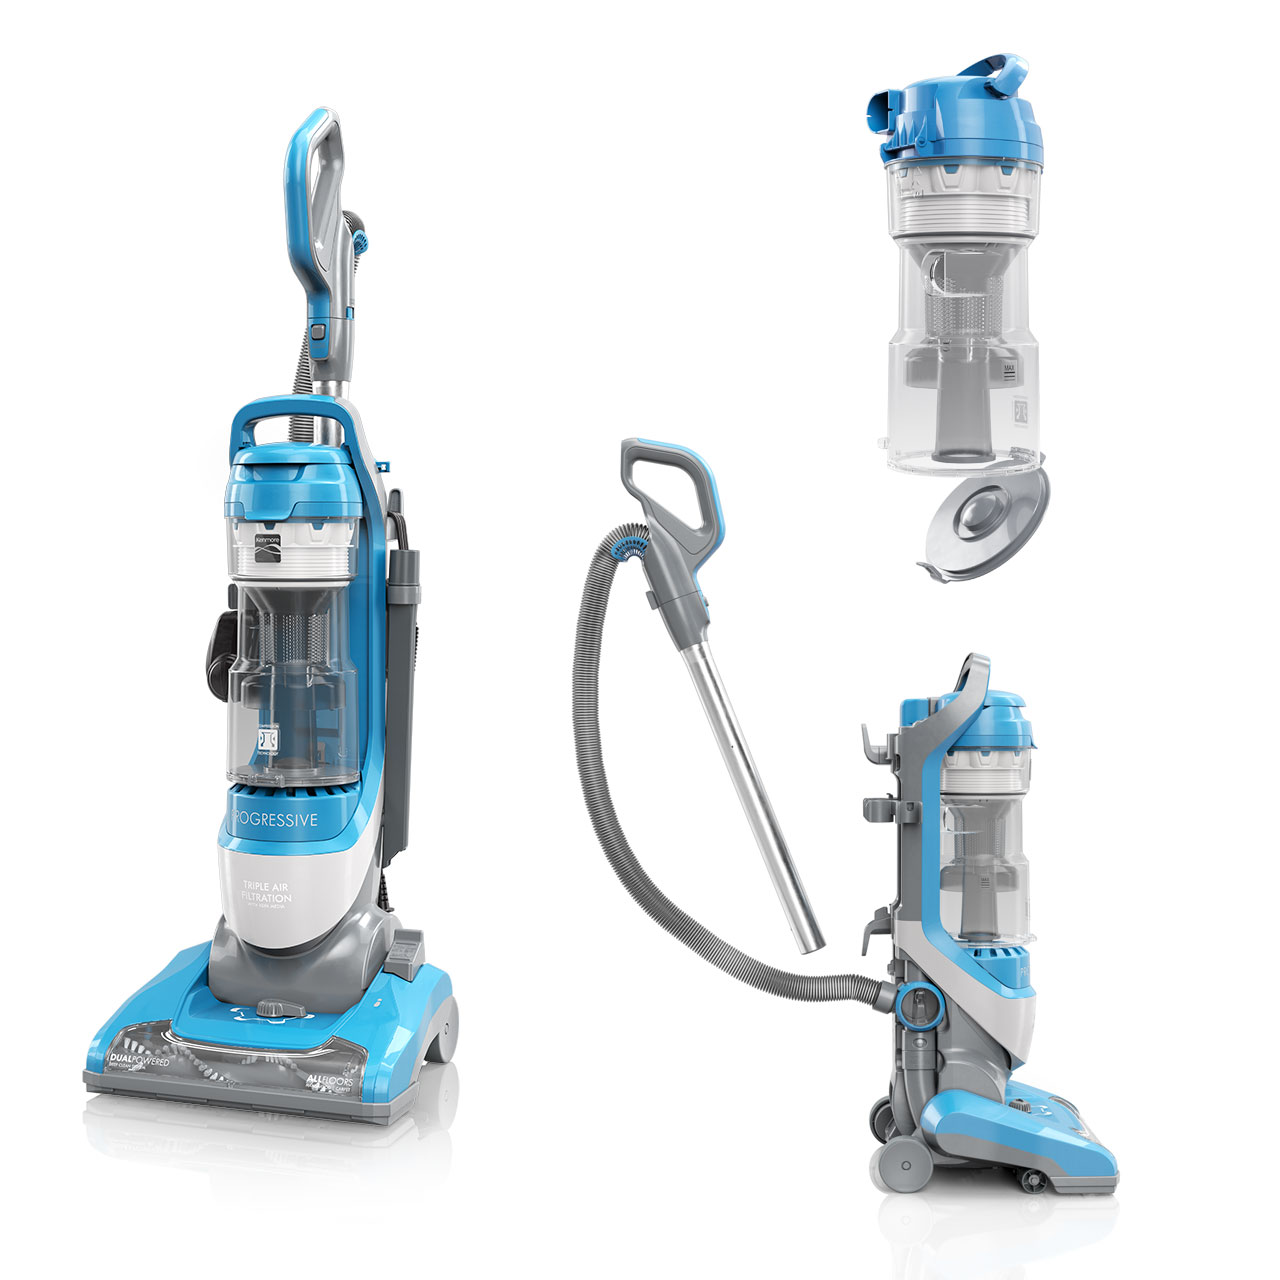 Three images of a blue and gray Kenmore vacuum cleaner showing its many features for the product packaging